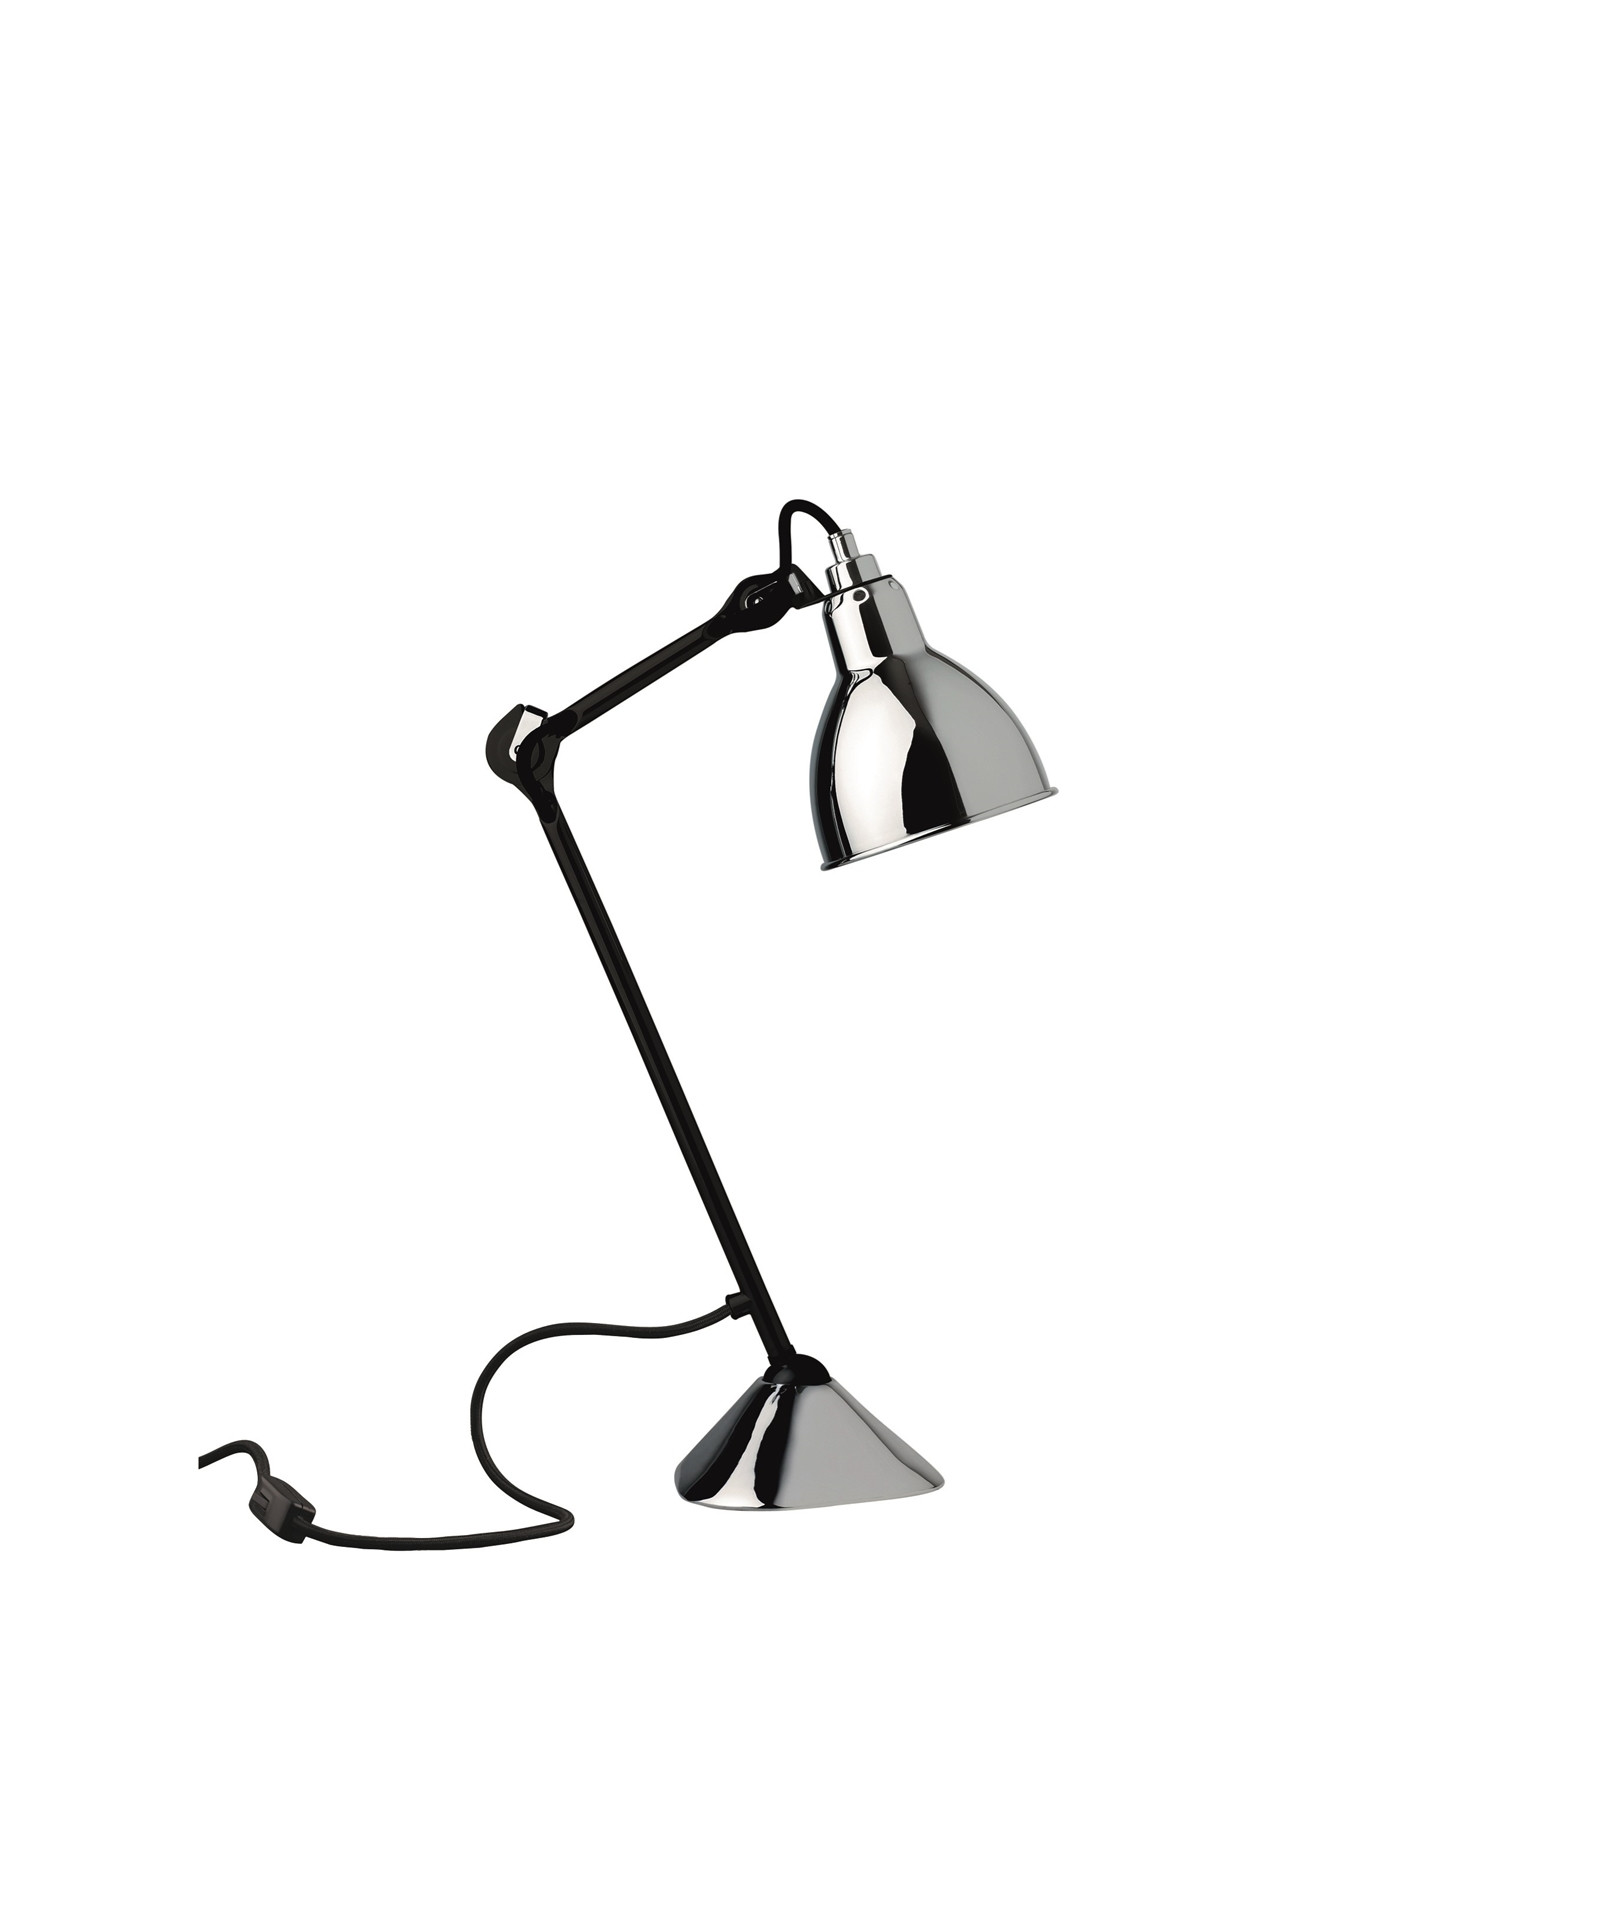 Image of   205 Bordlampe Sort/Krom - Lampe Gras